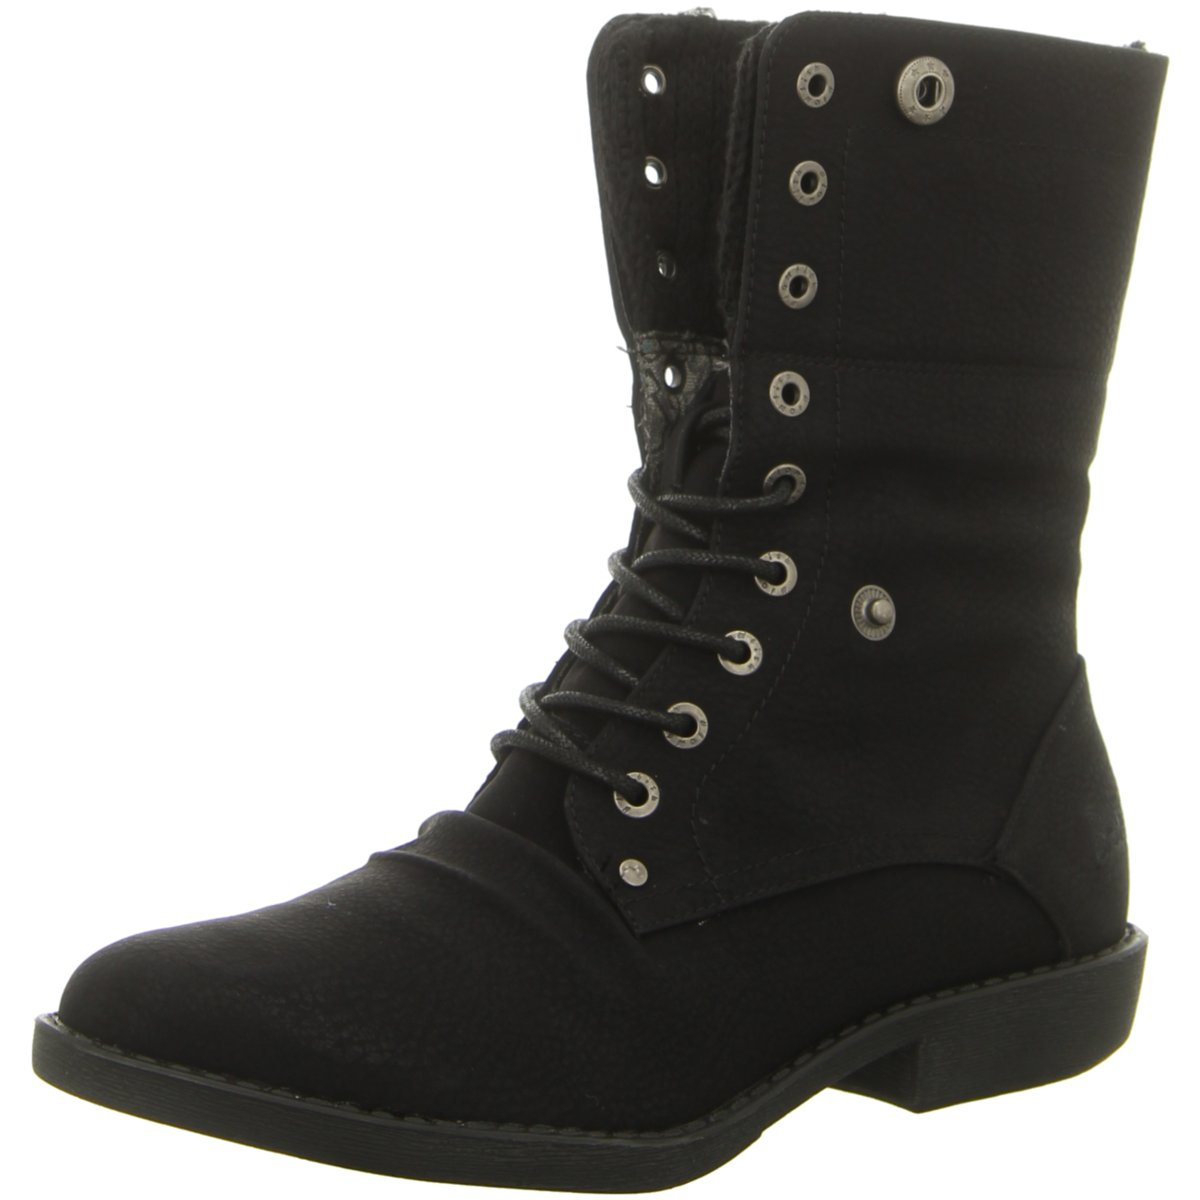 NEU Blowfish Damen Stiefel BF6530 BLACK schwarz 363229